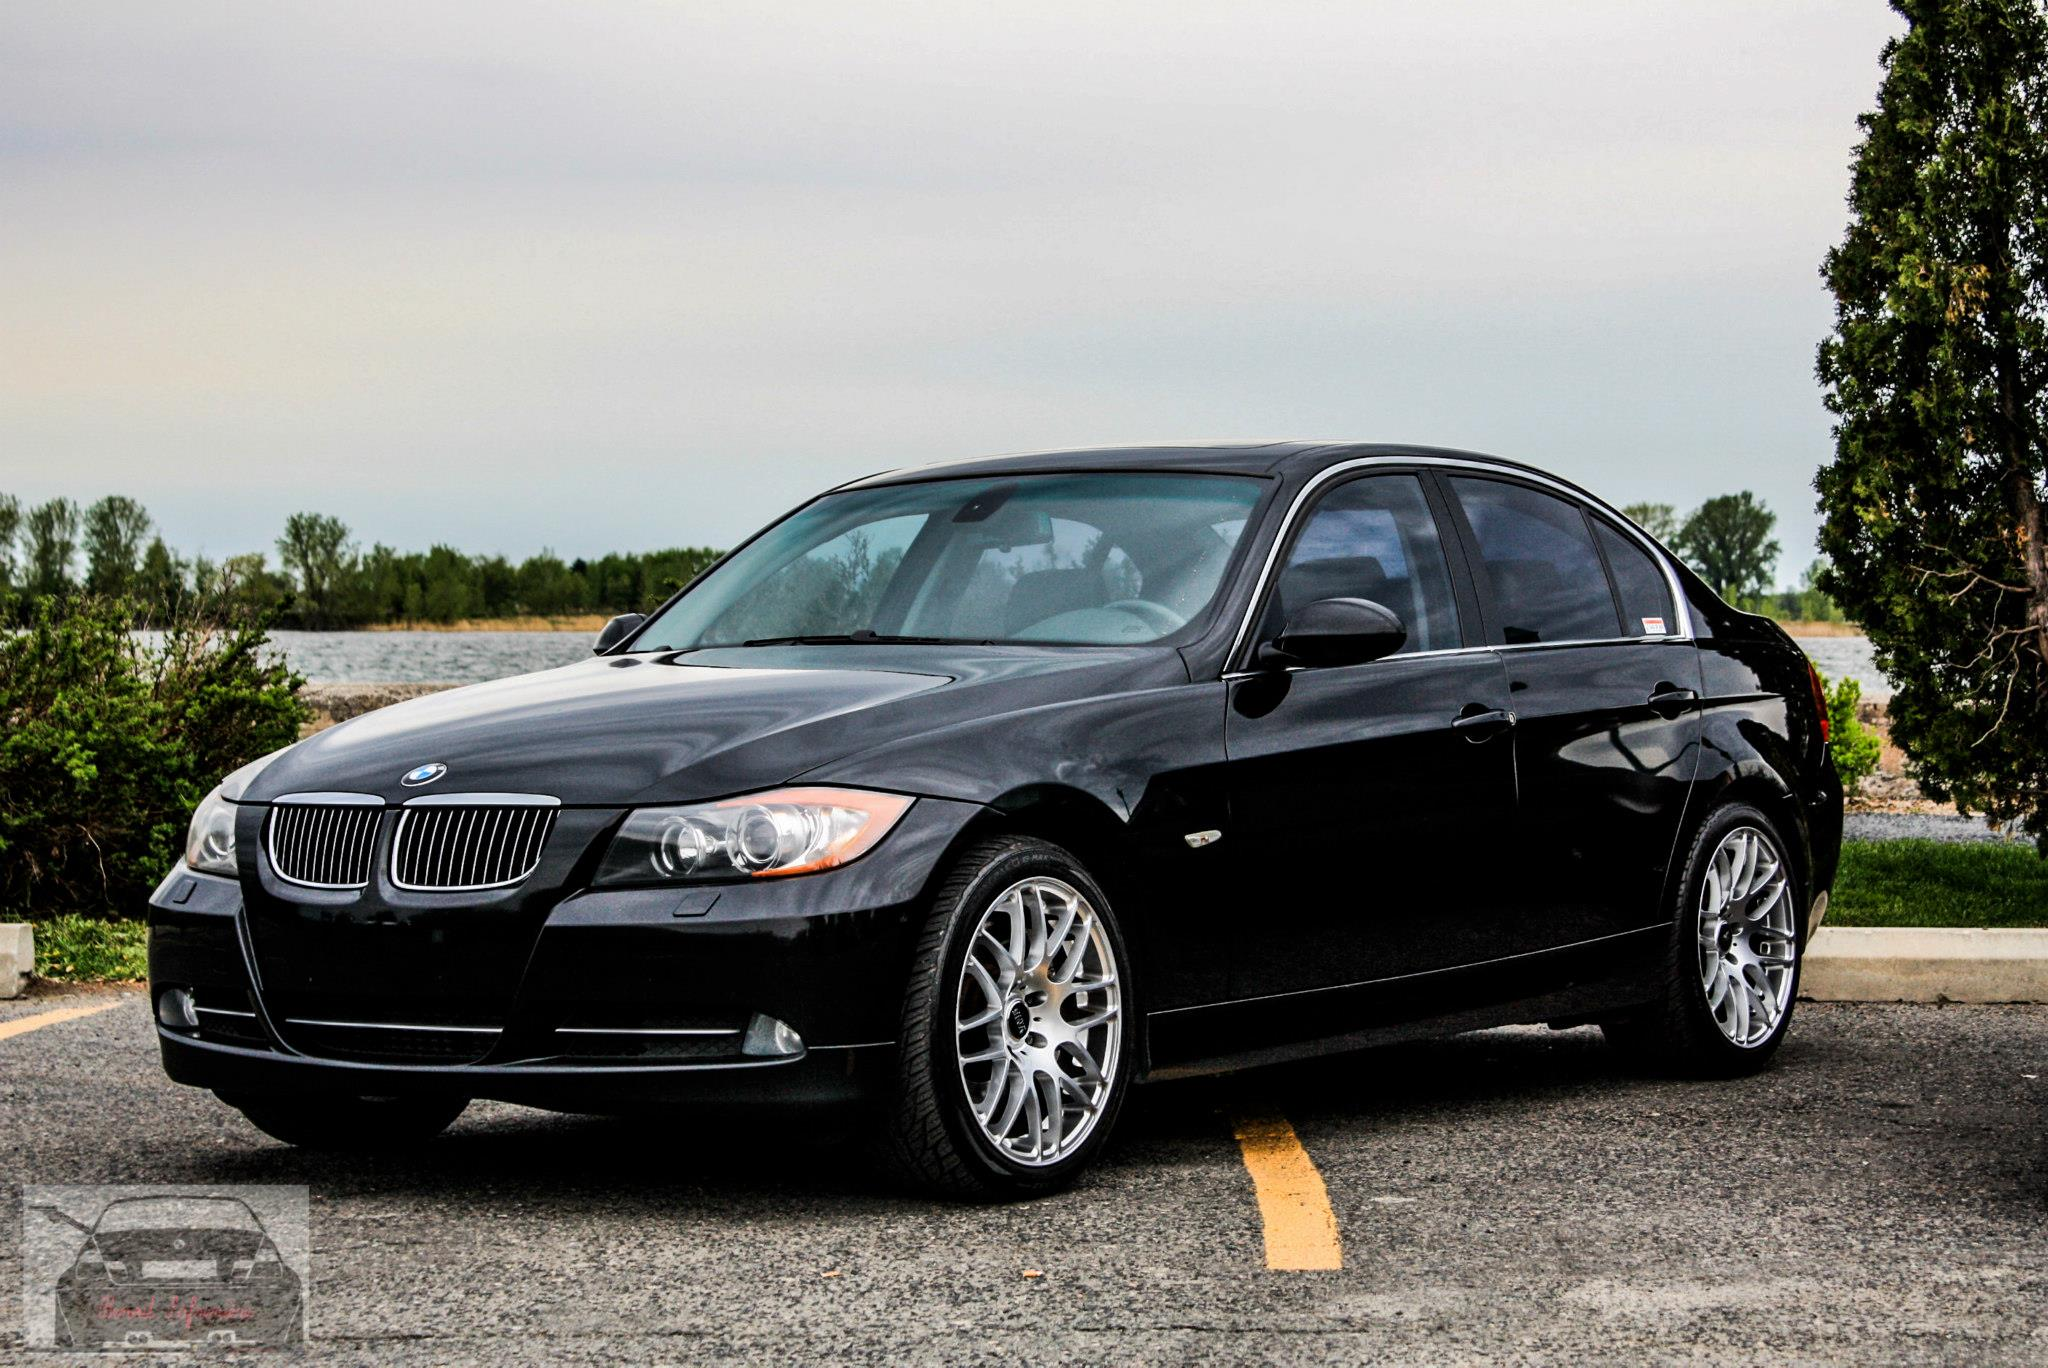 xi for sale 2008 jet black bmw 335xi e90 pictures mods upgrades i with lots of goodies. Black Bedroom Furniture Sets. Home Design Ideas